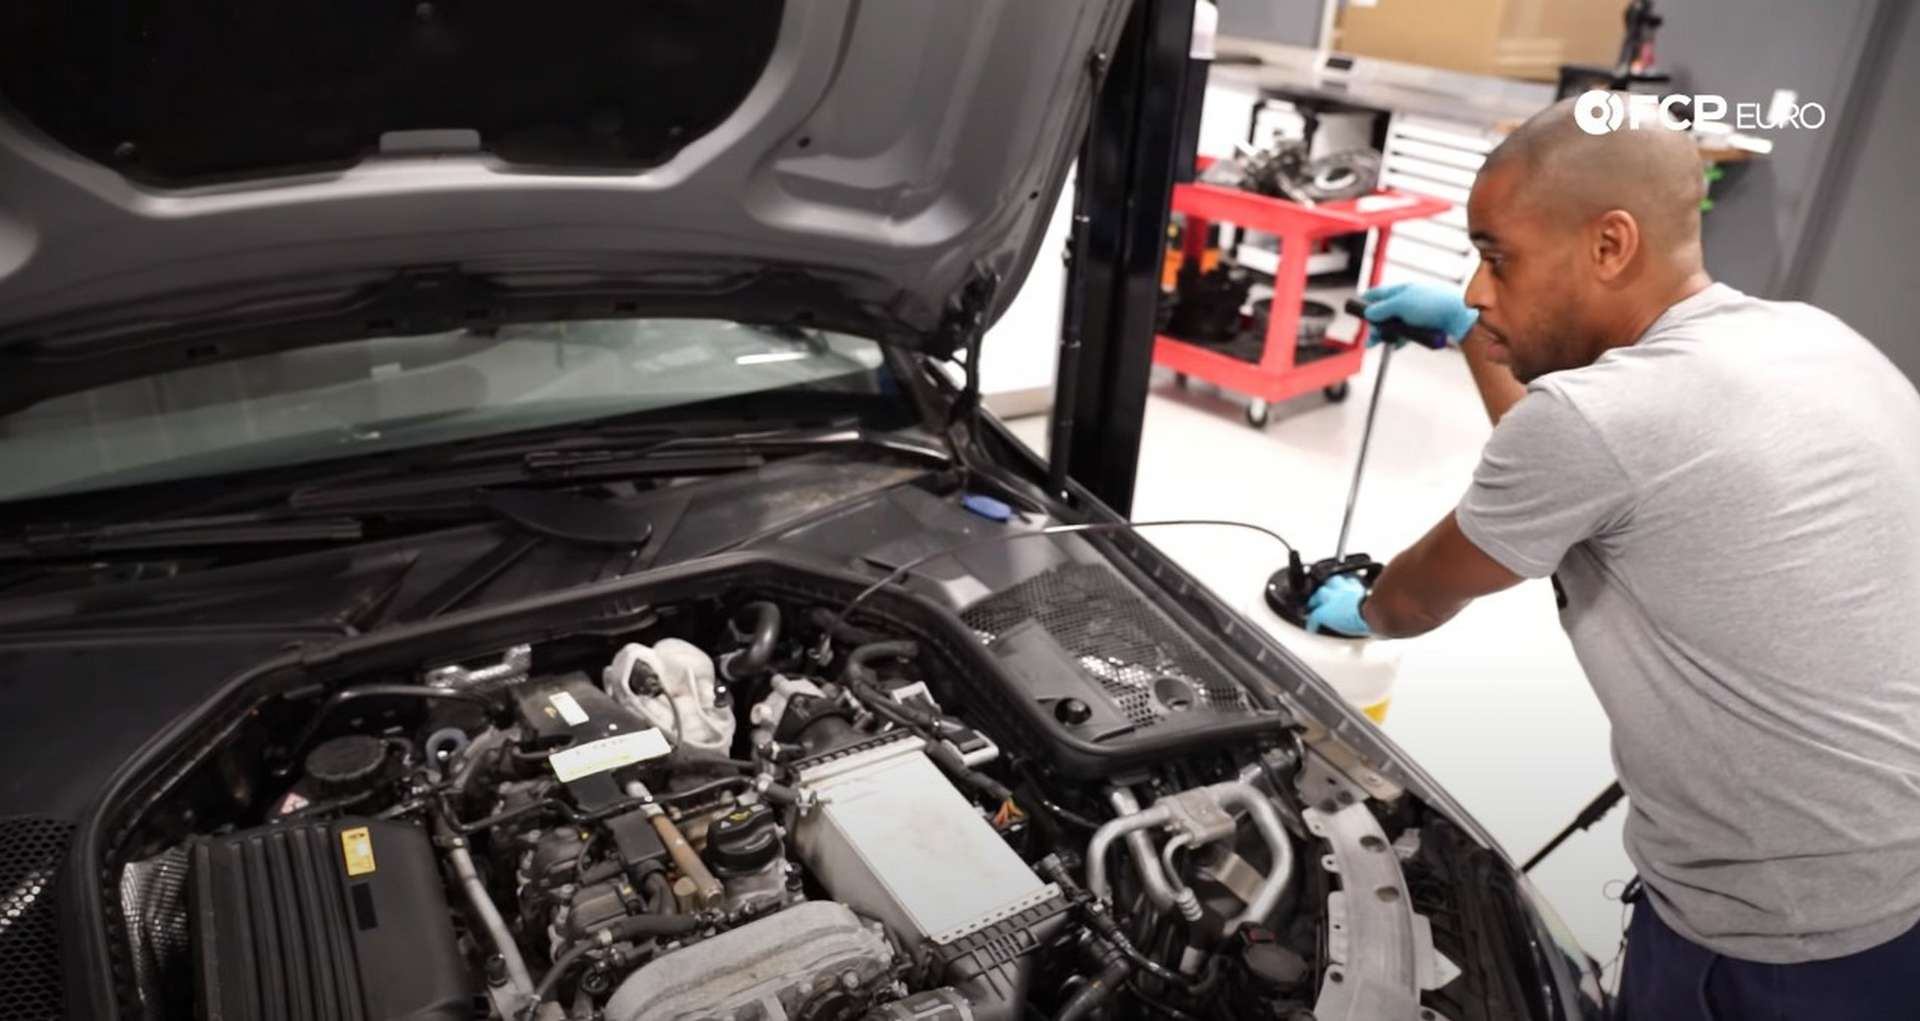 DIY Mercedes M274 Oil Change extracting the oil